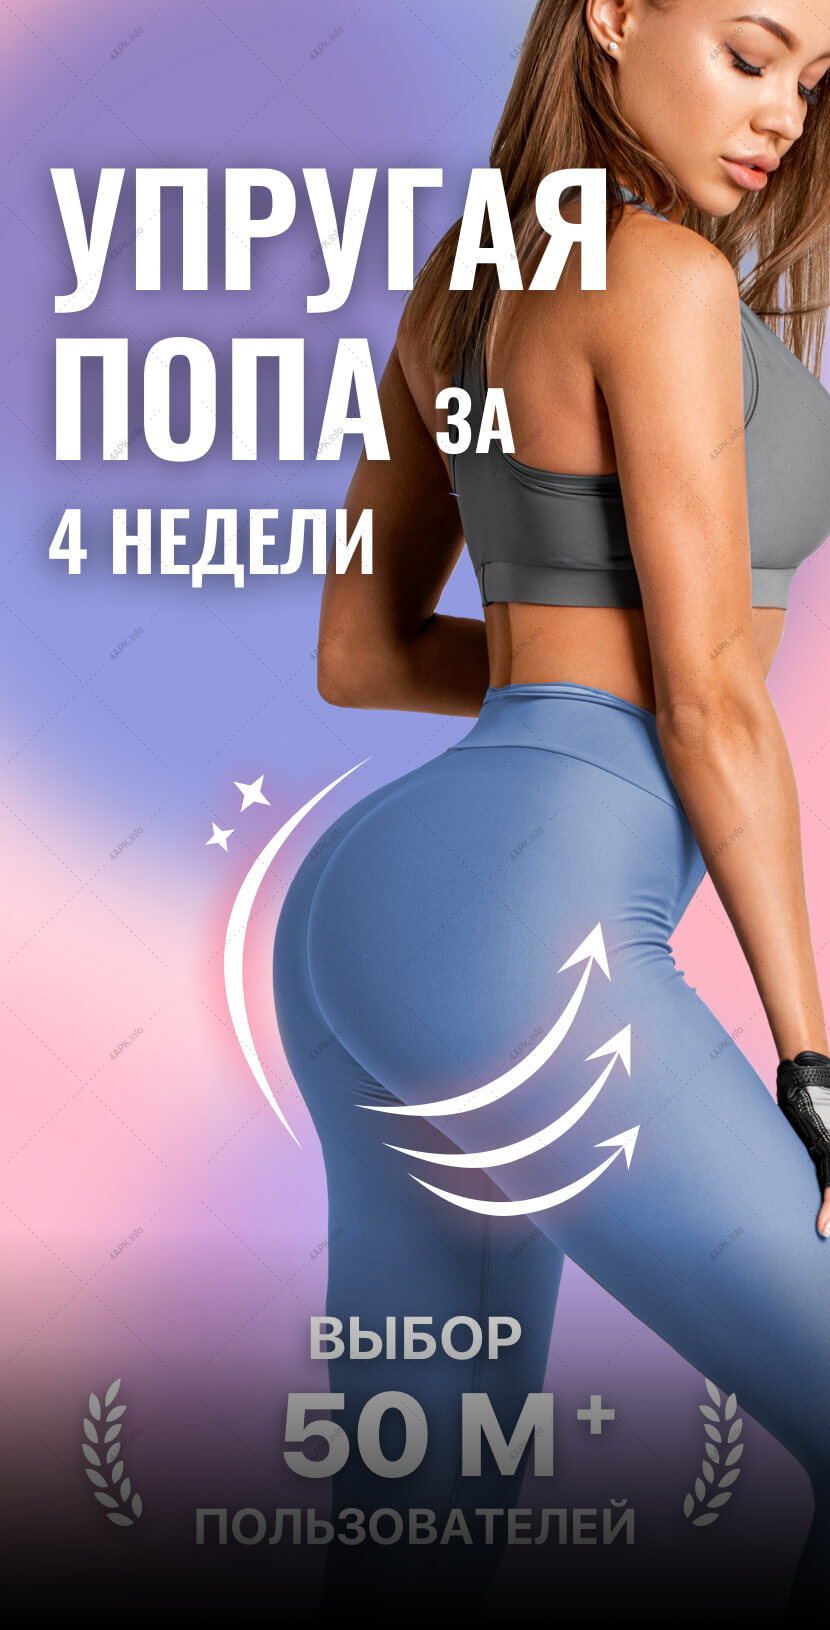 Попа для android